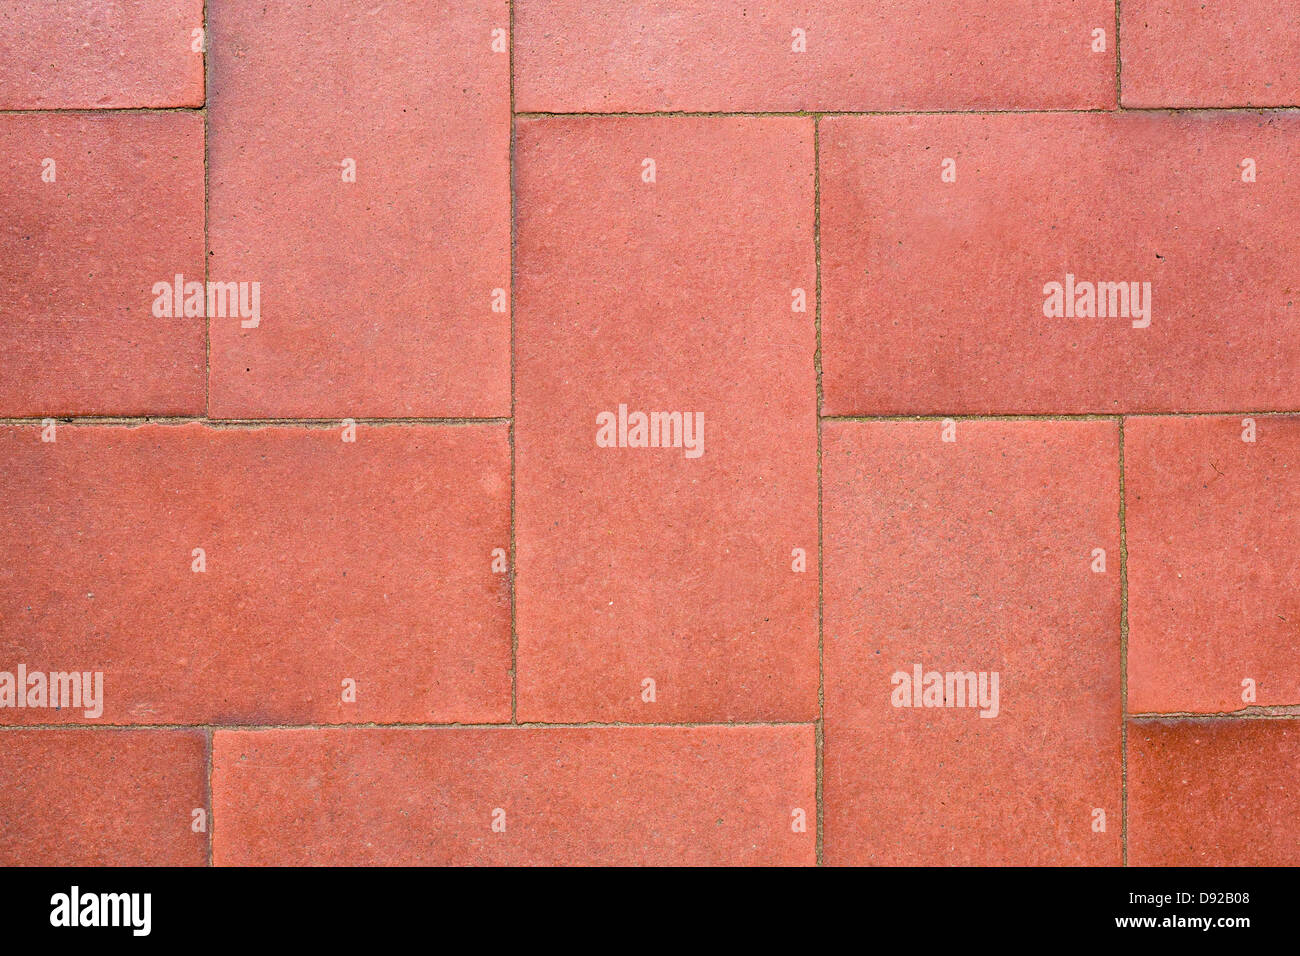 Terracotta floor tile pattern stock photo 57215544 alamy terracotta floor tile pattern dailygadgetfo Images